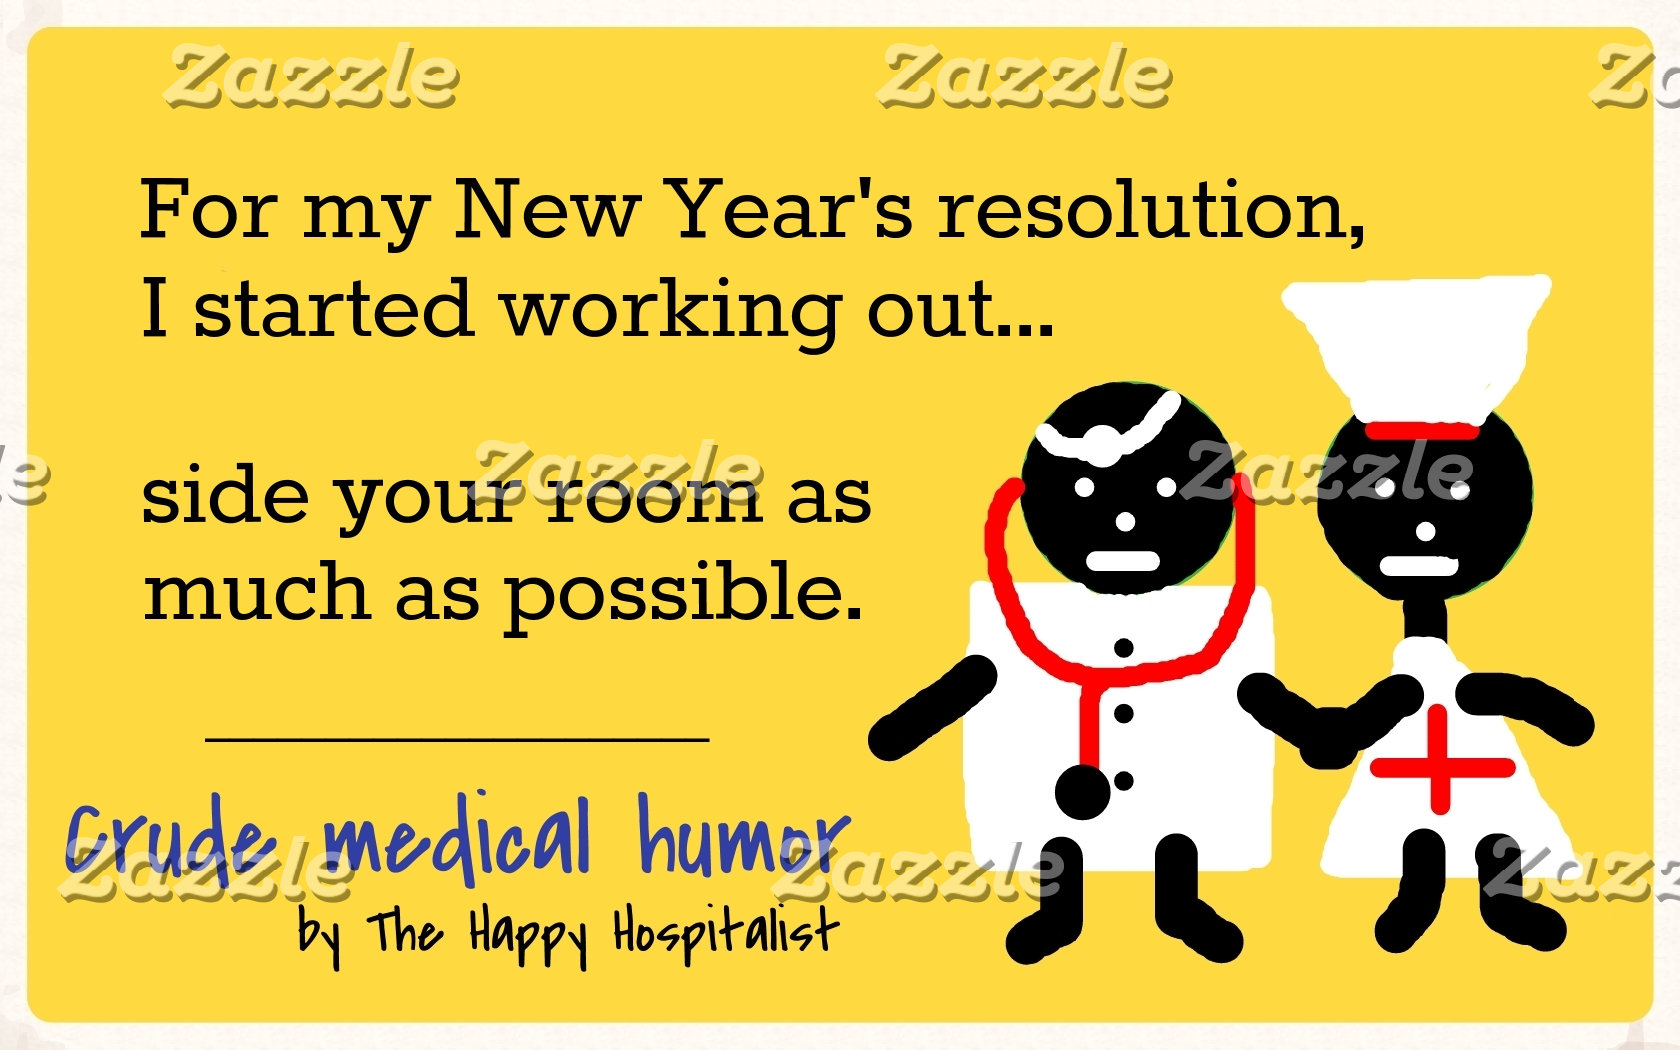 For my New Year's resolution, I started working...